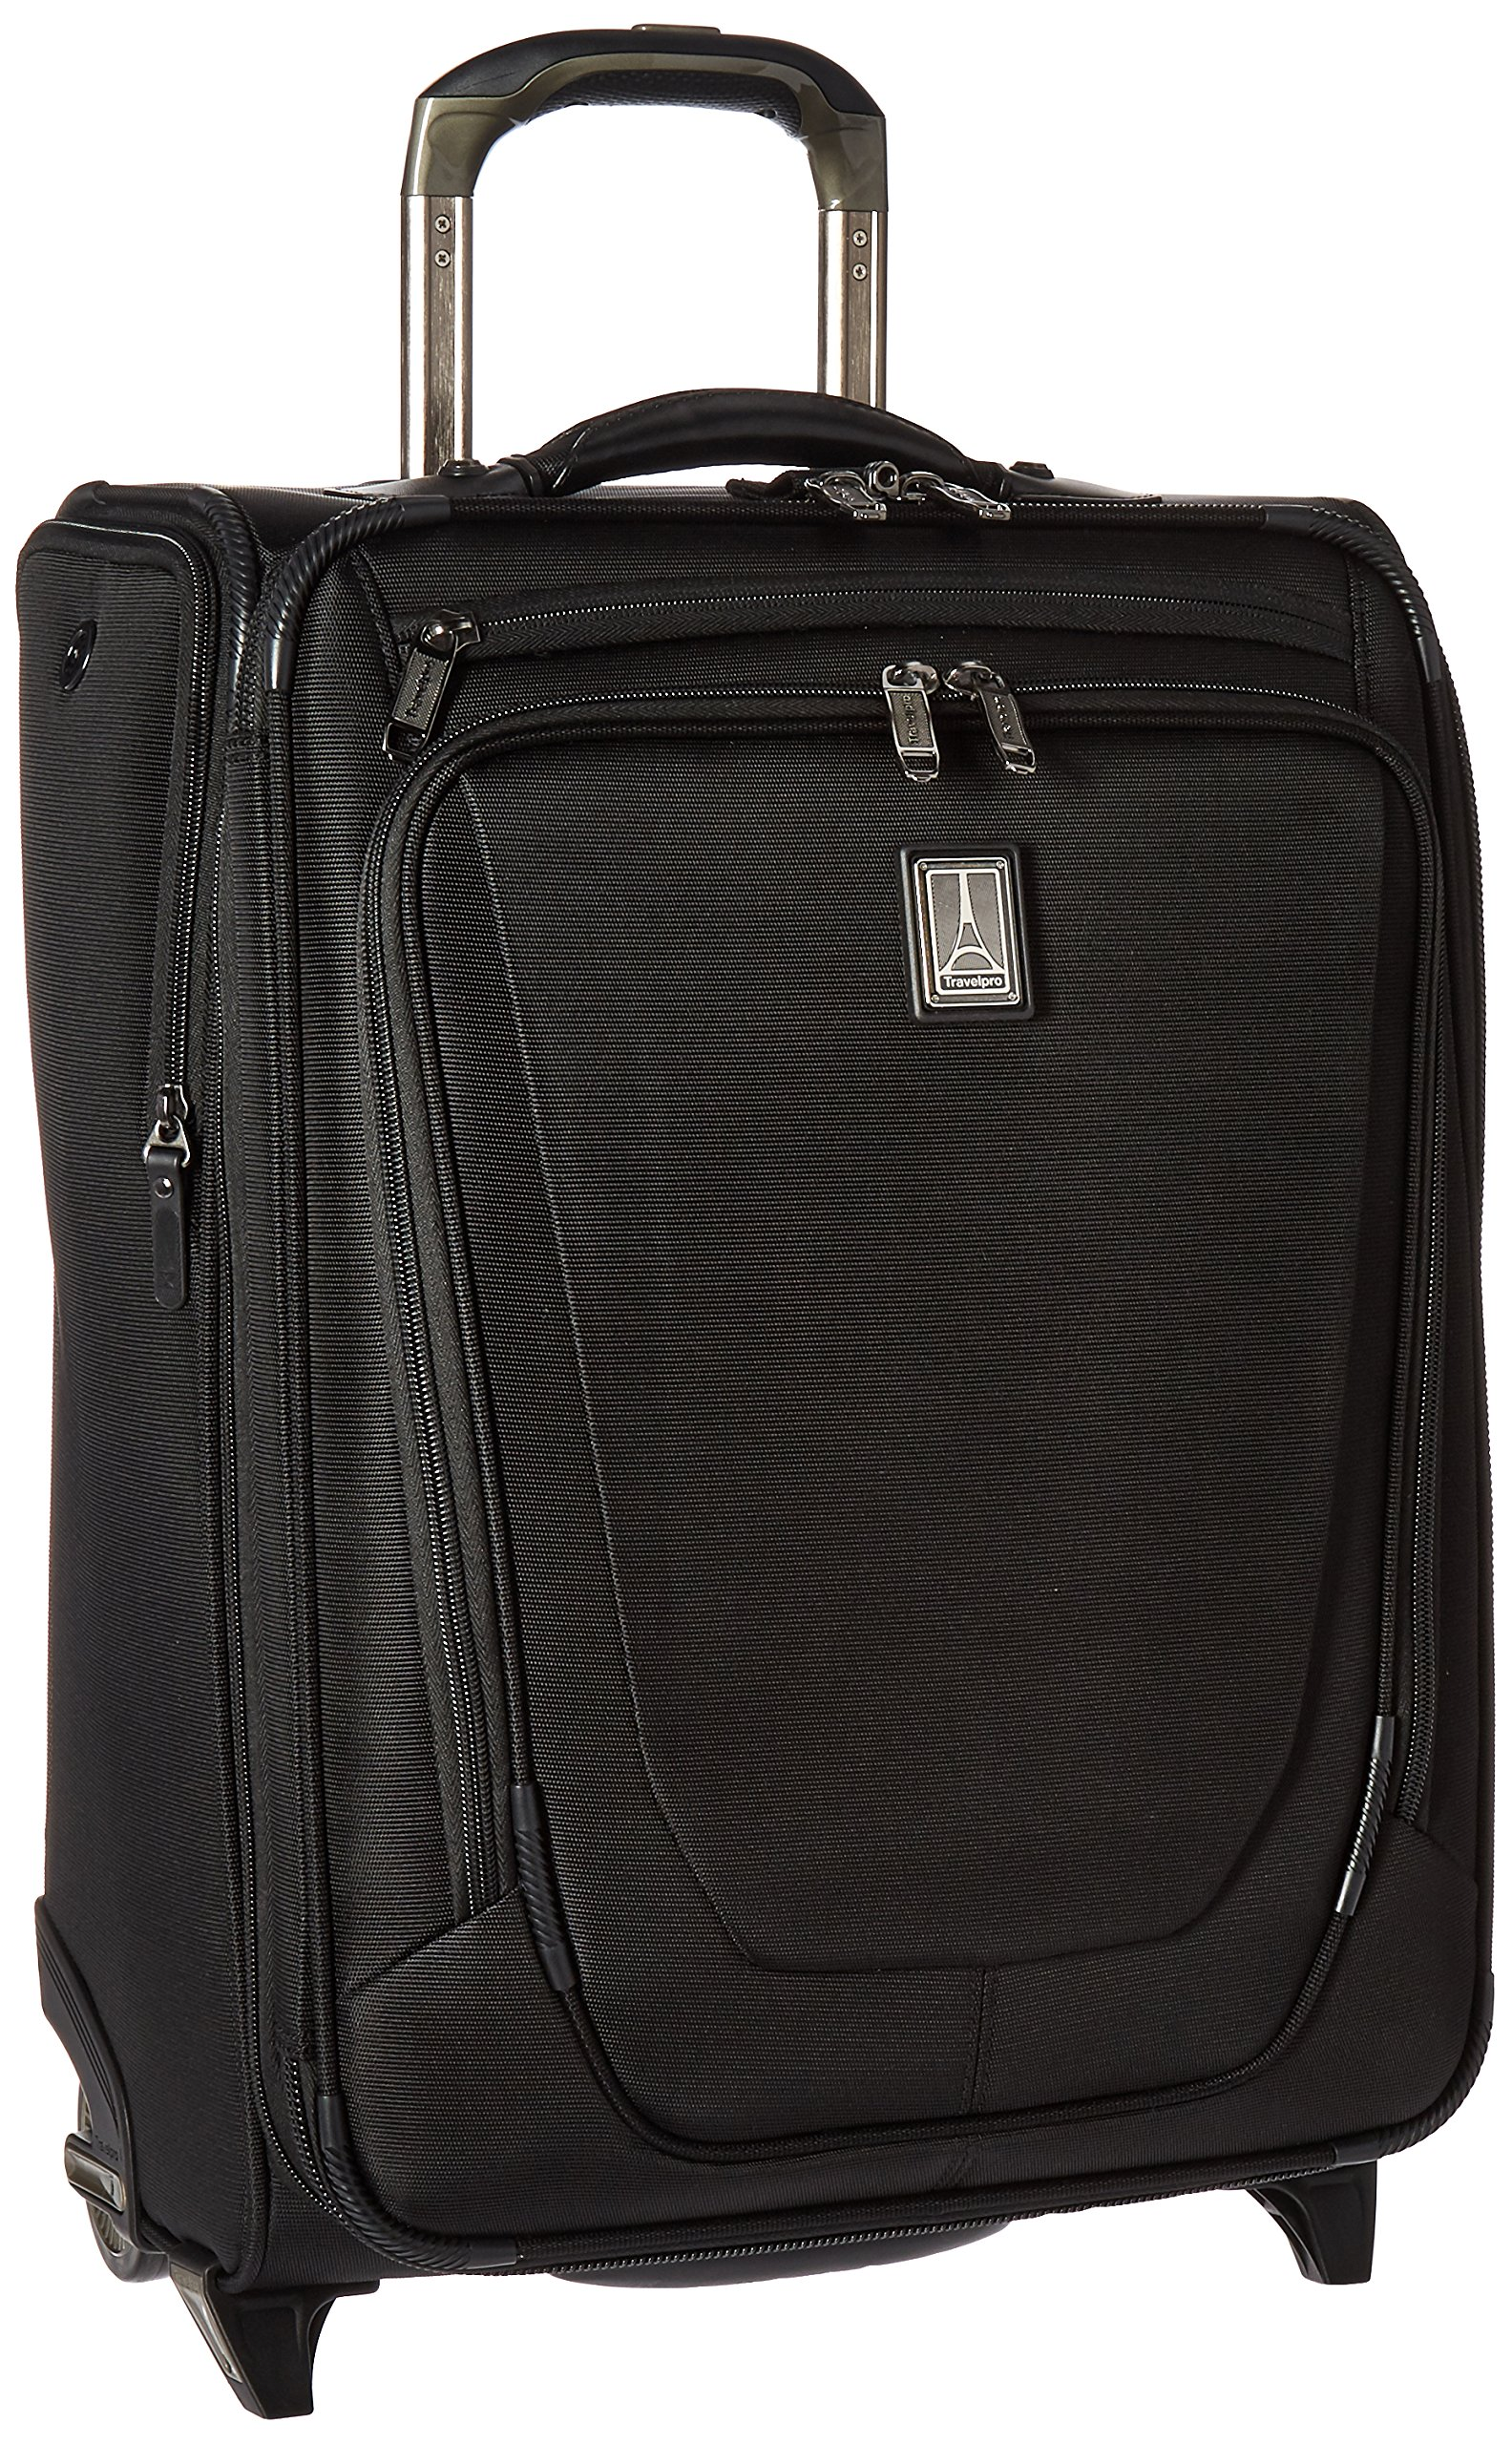 Travelpro Crew 11 20'' Bus Plus Upright, Black by Travelpro